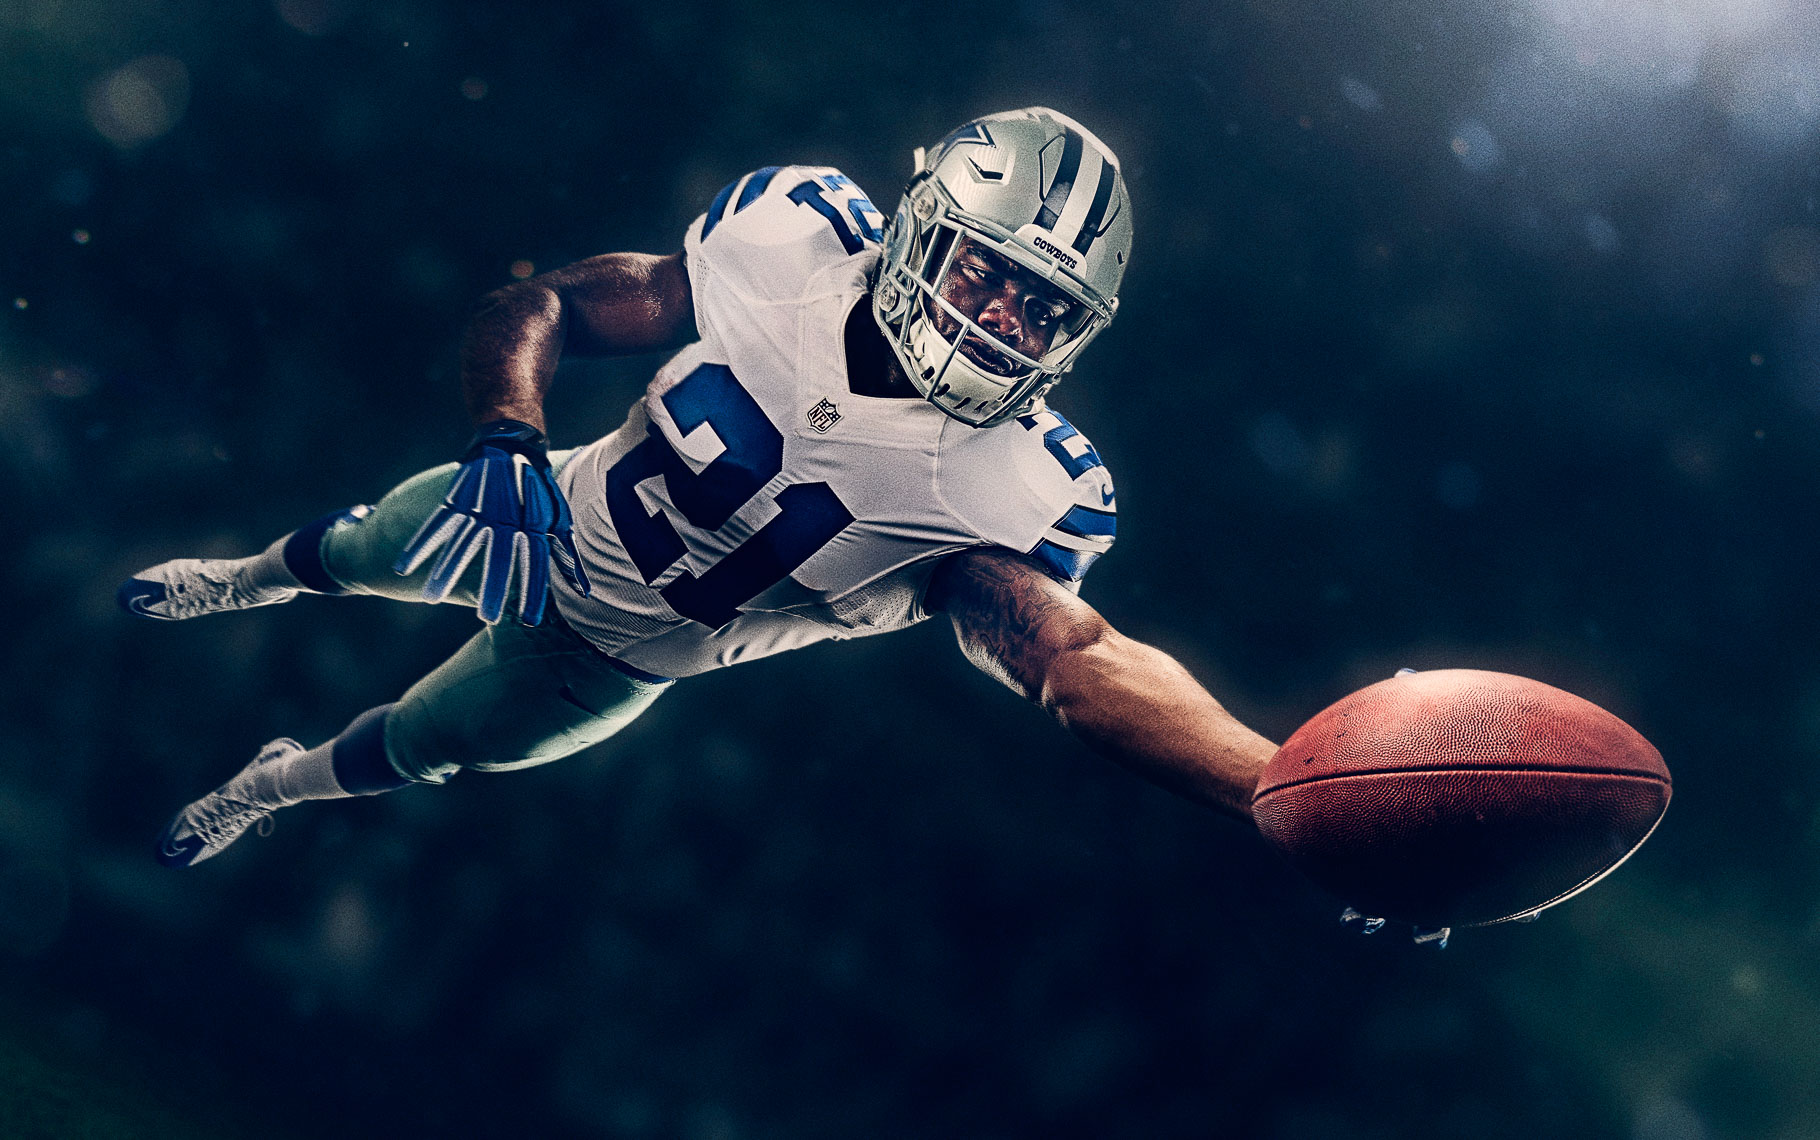 NFL_TimTadder_EZEKIEL_ELLIOTT_02 Final